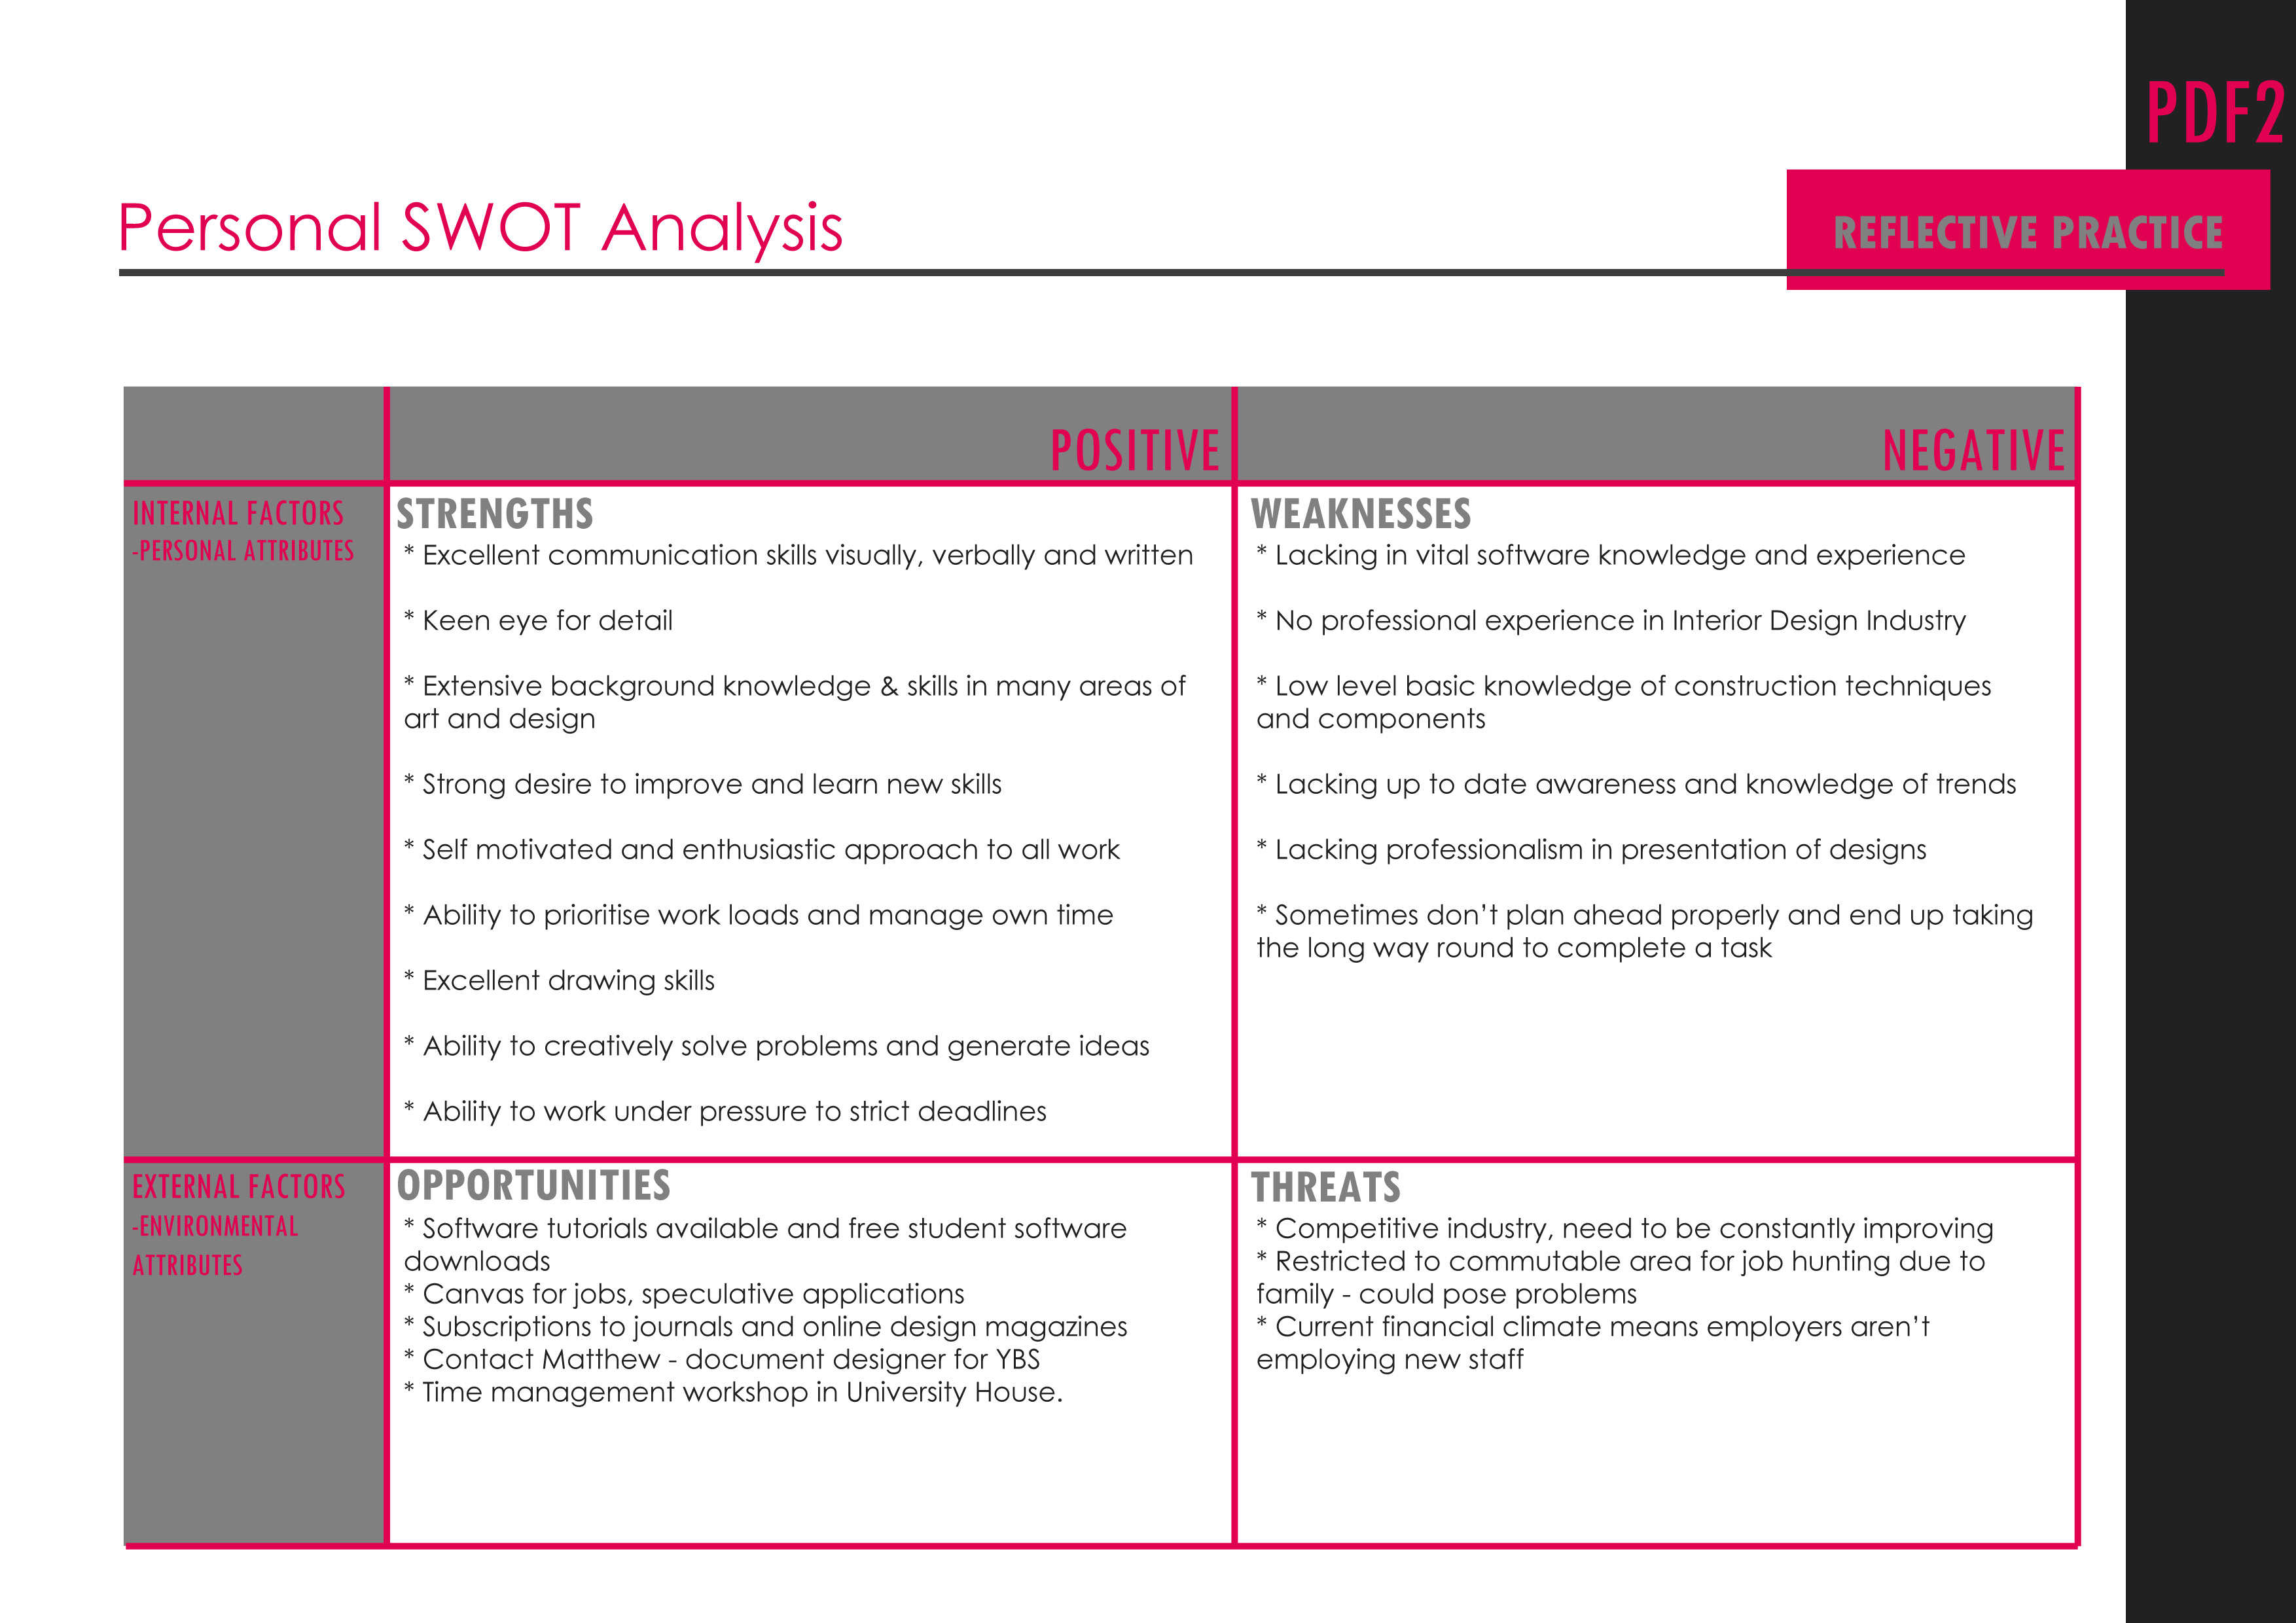 Personal Swot Analysis Essay College Essay Personal Statement